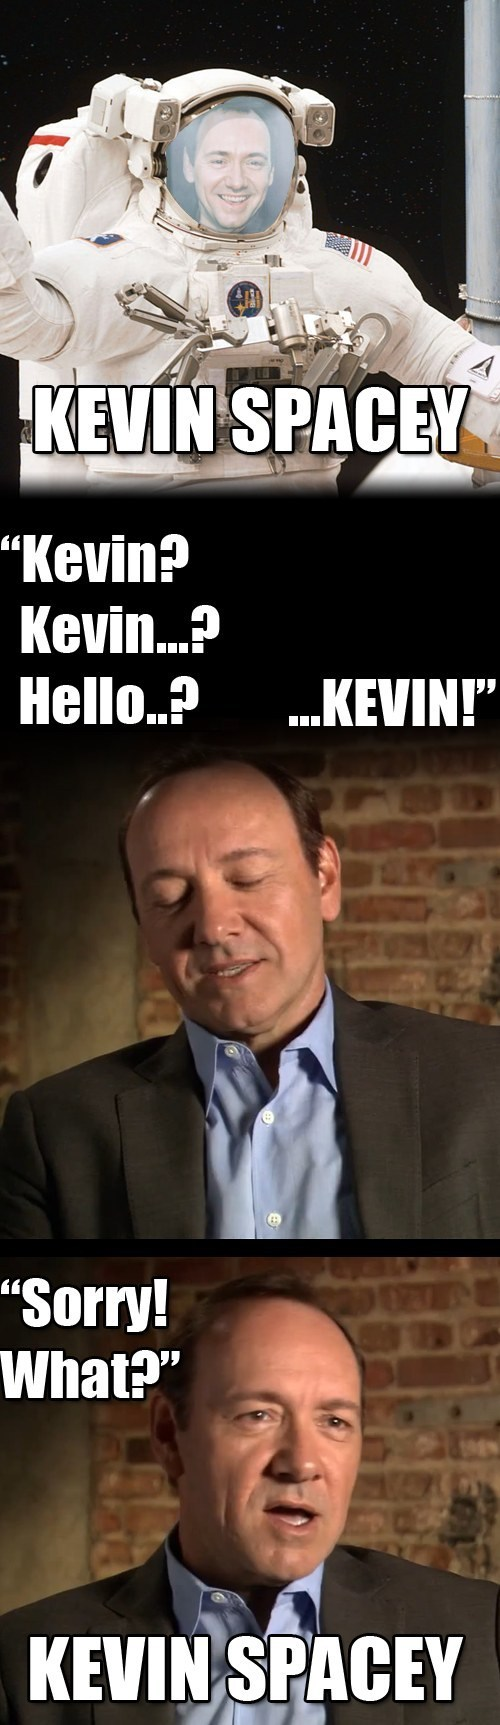 surname spacey variations on a theme literalism kevin spacey double meaning - 6738911744